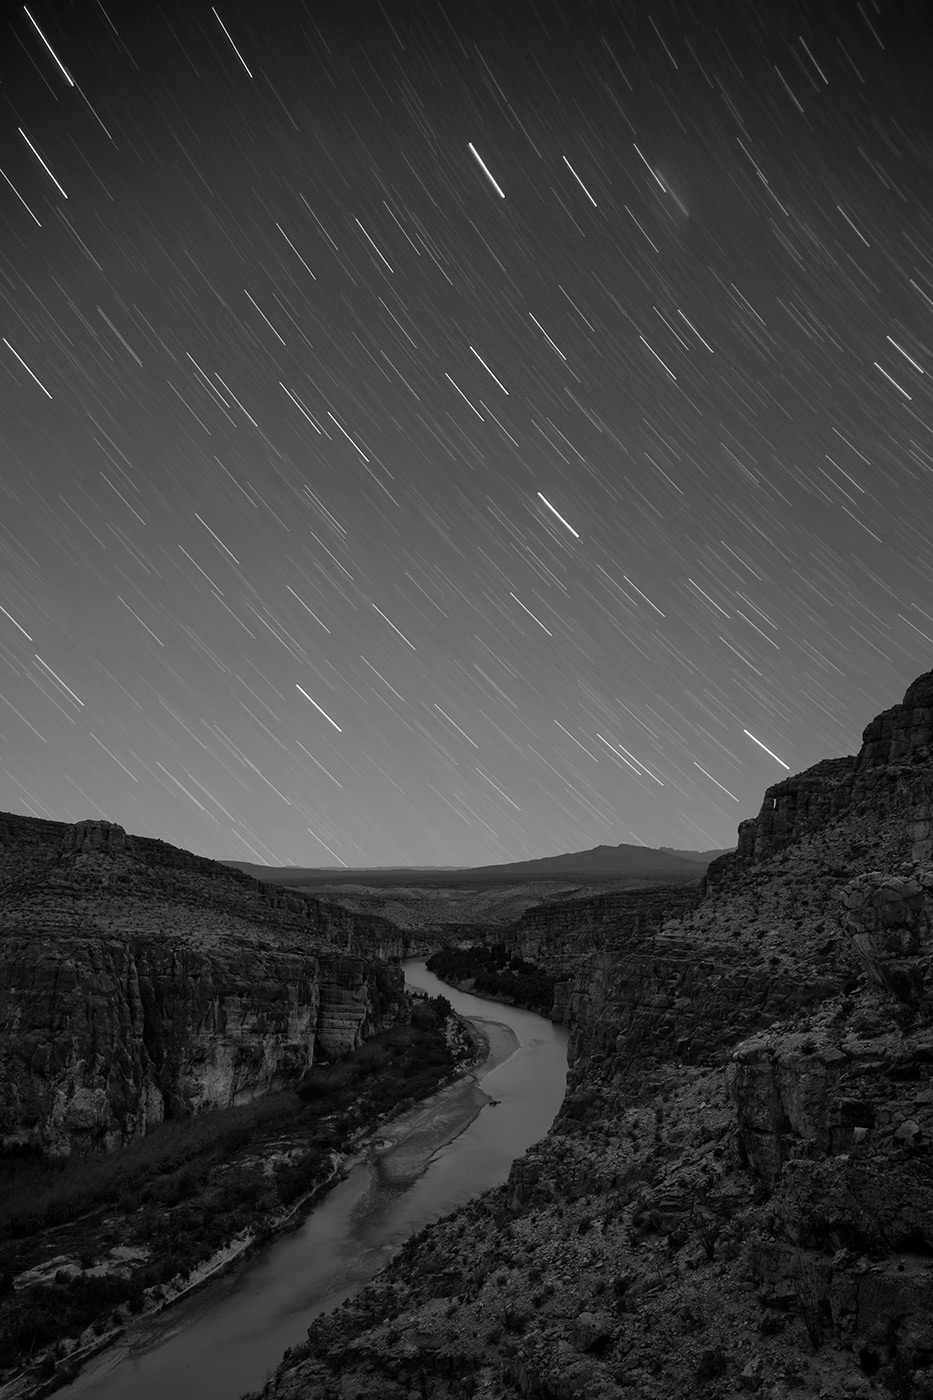 West-Texas-ABP-Hot-Springs-Canyon_stars.jpg